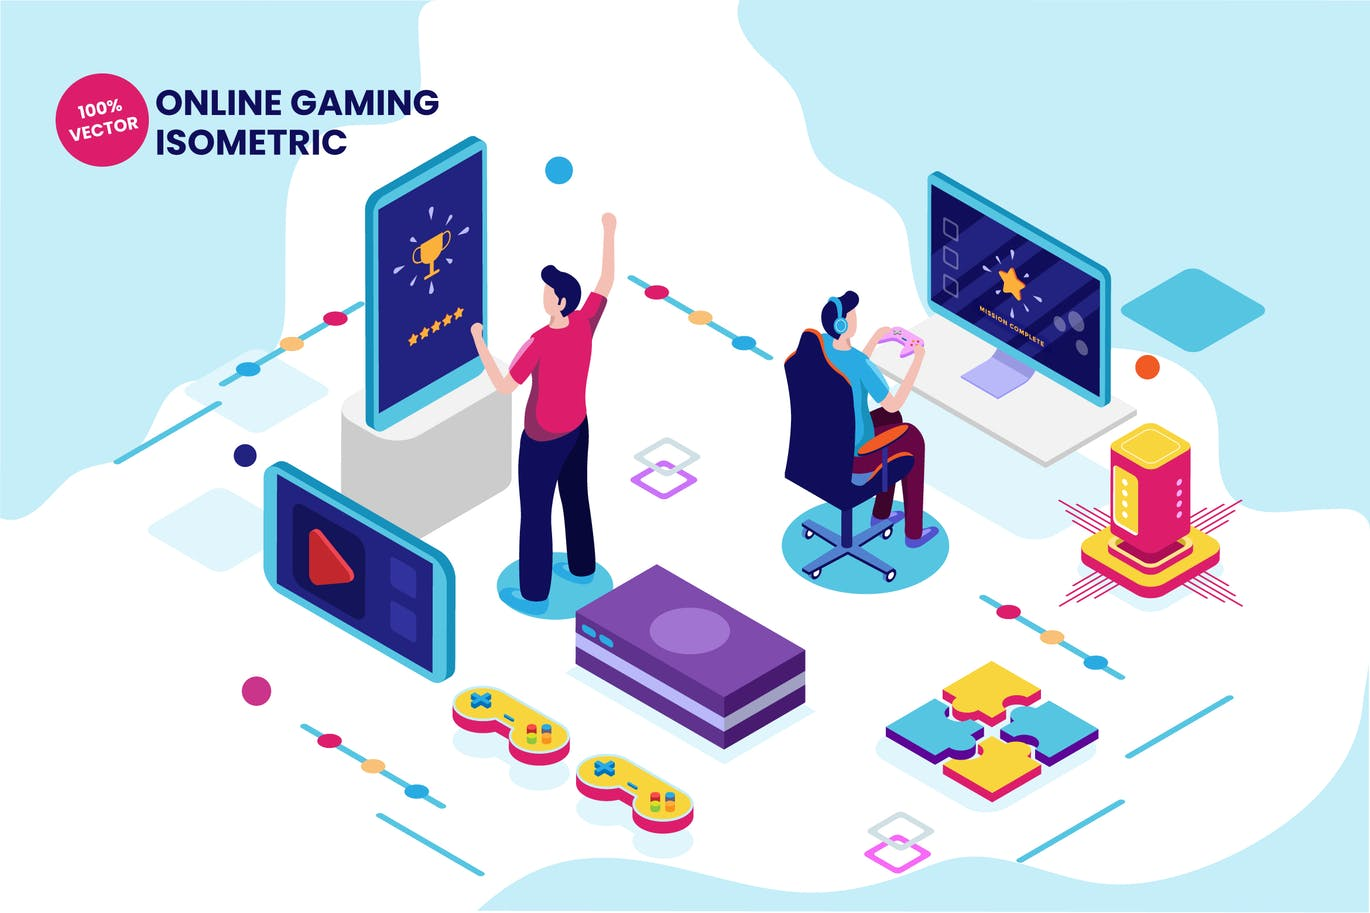 Isometric Online Gaming Vector Illustration